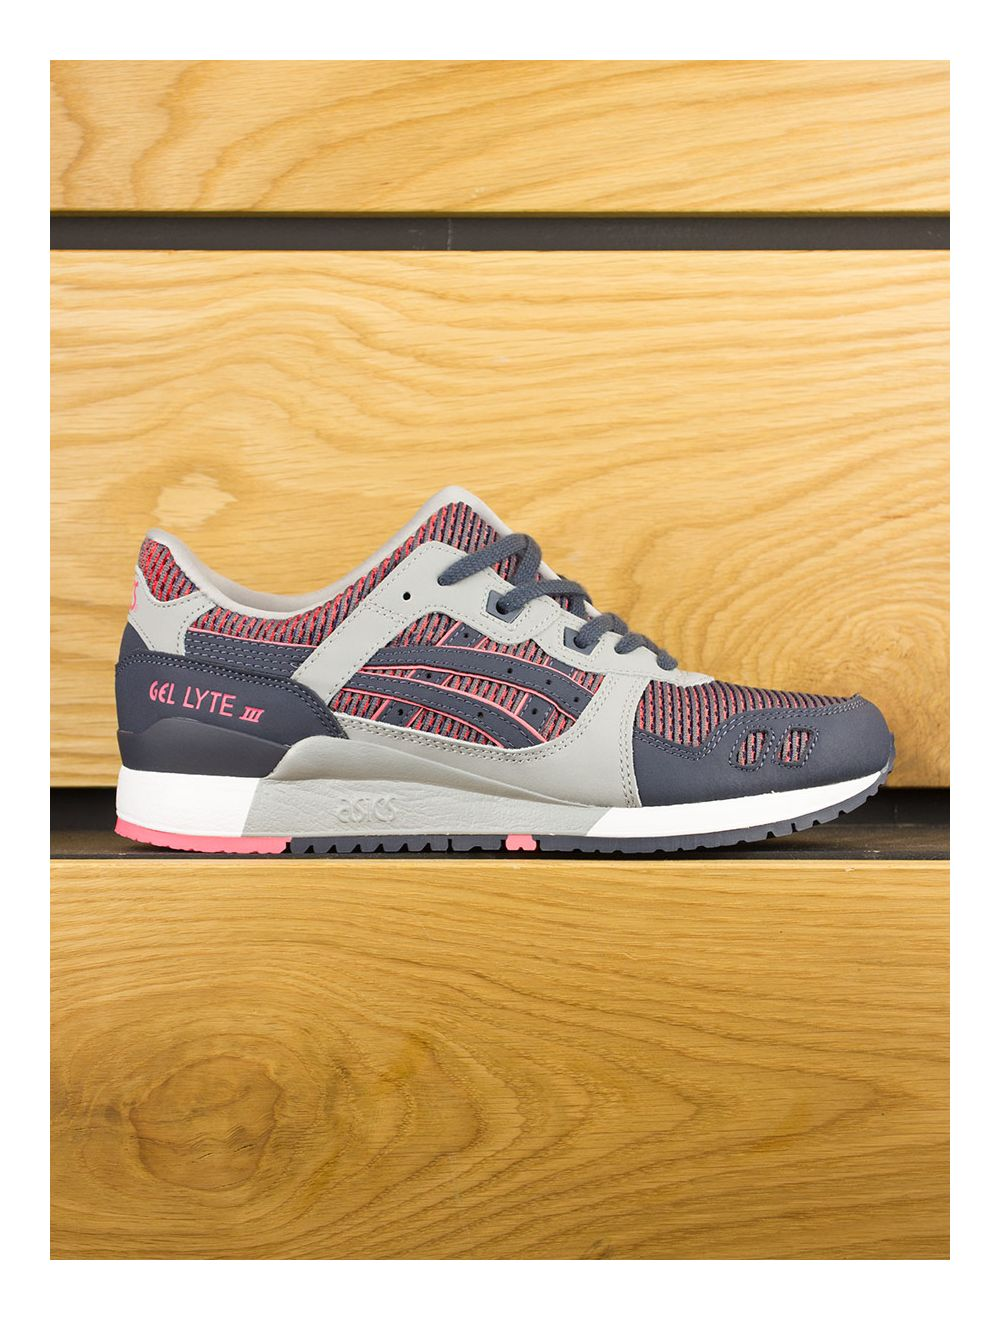 outlet store 8f3a1 601f6 Asics Gel-Lyte III 'Chameleoid Mesh Pack' - Medium Grey Guava